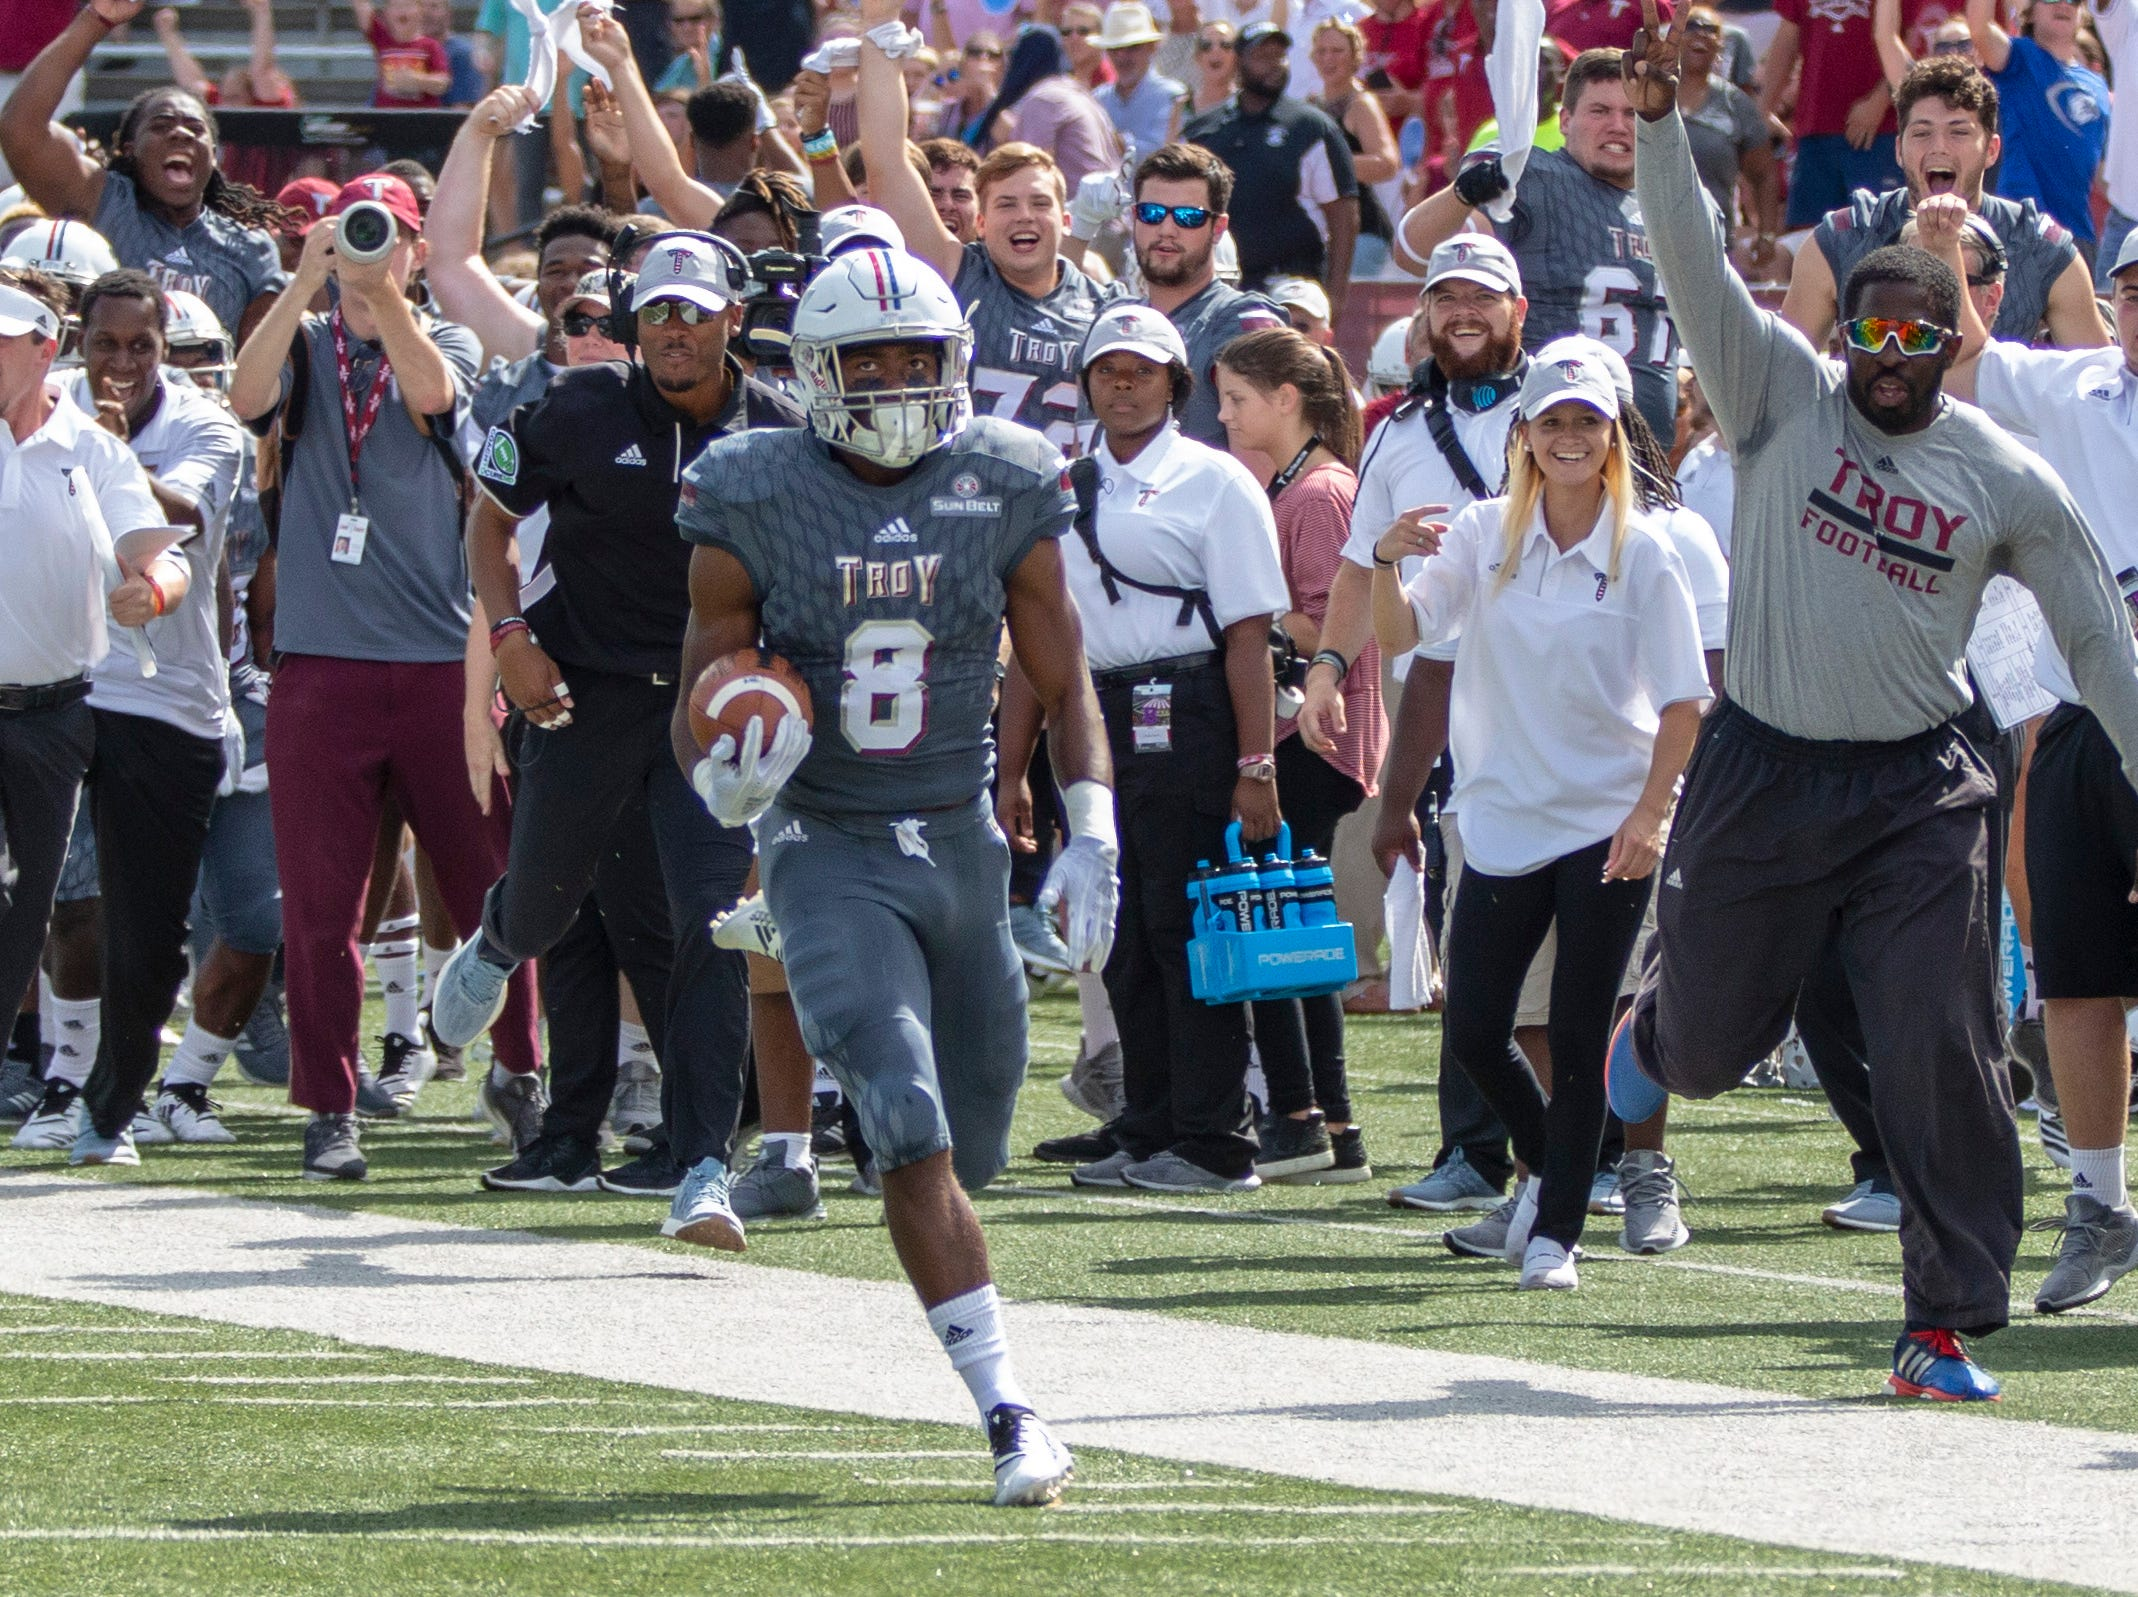 Troy's Marcus Jones returns the kickoff for a touchdown against Coastal Carolina.